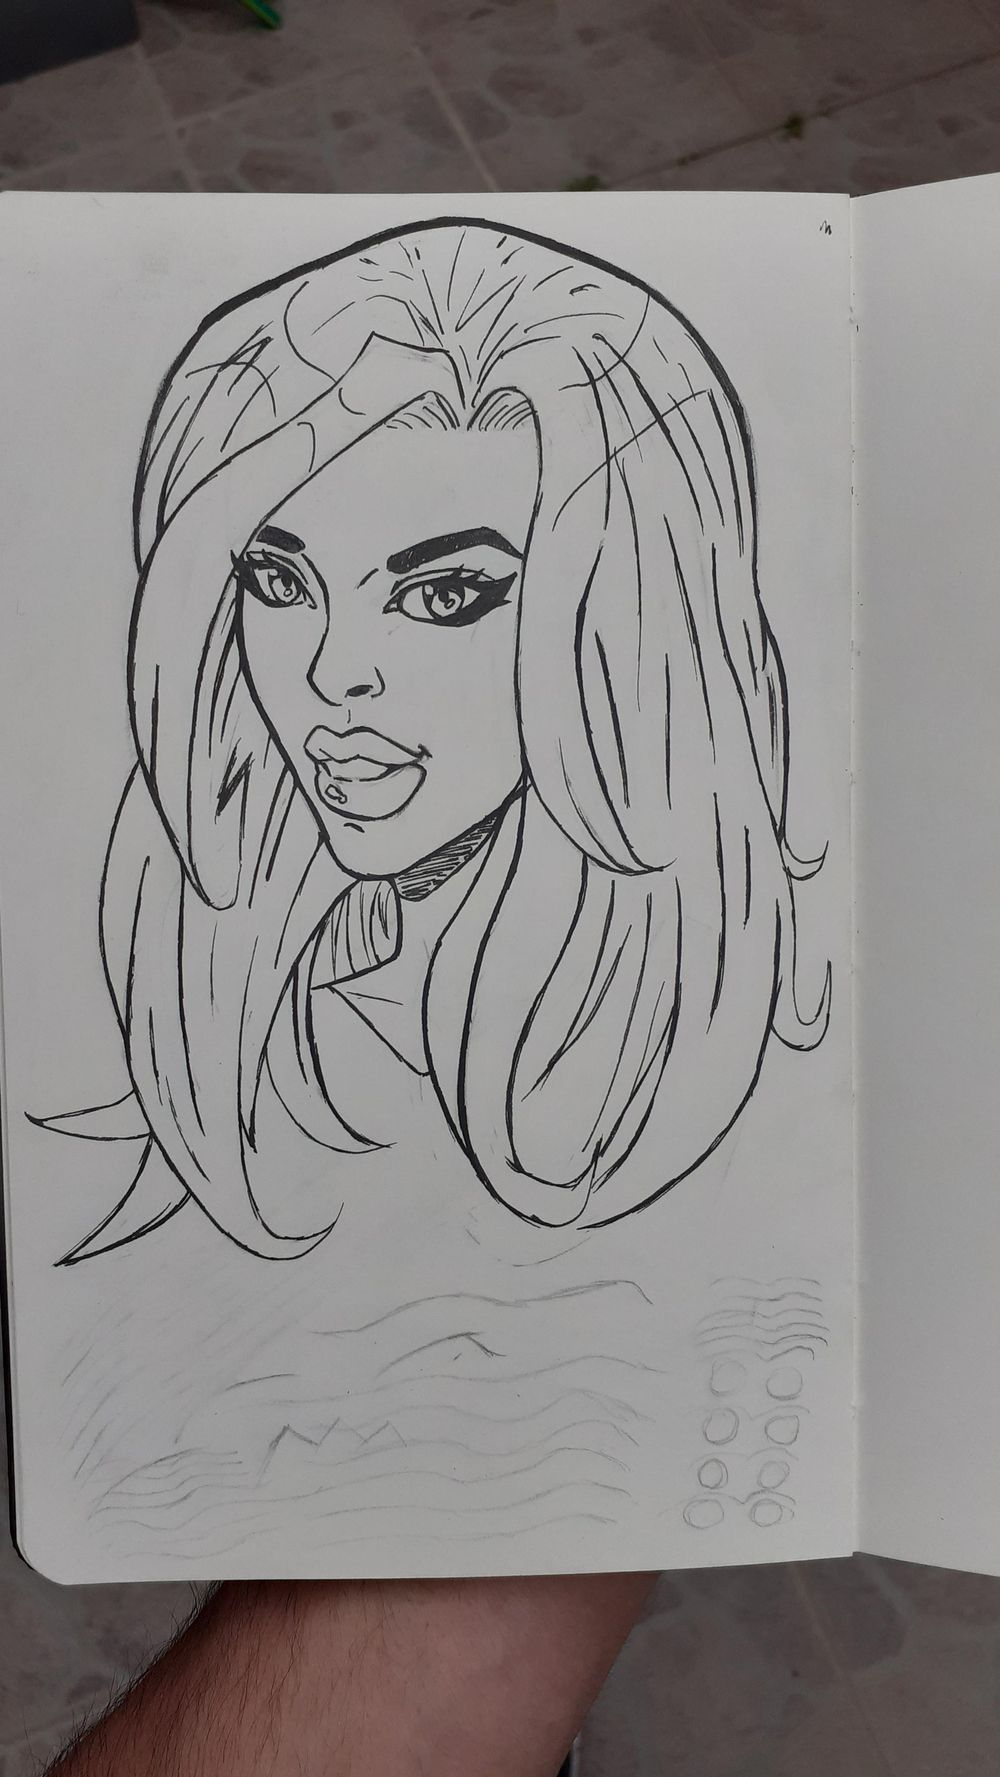 Comic style girl - image 1 - student project